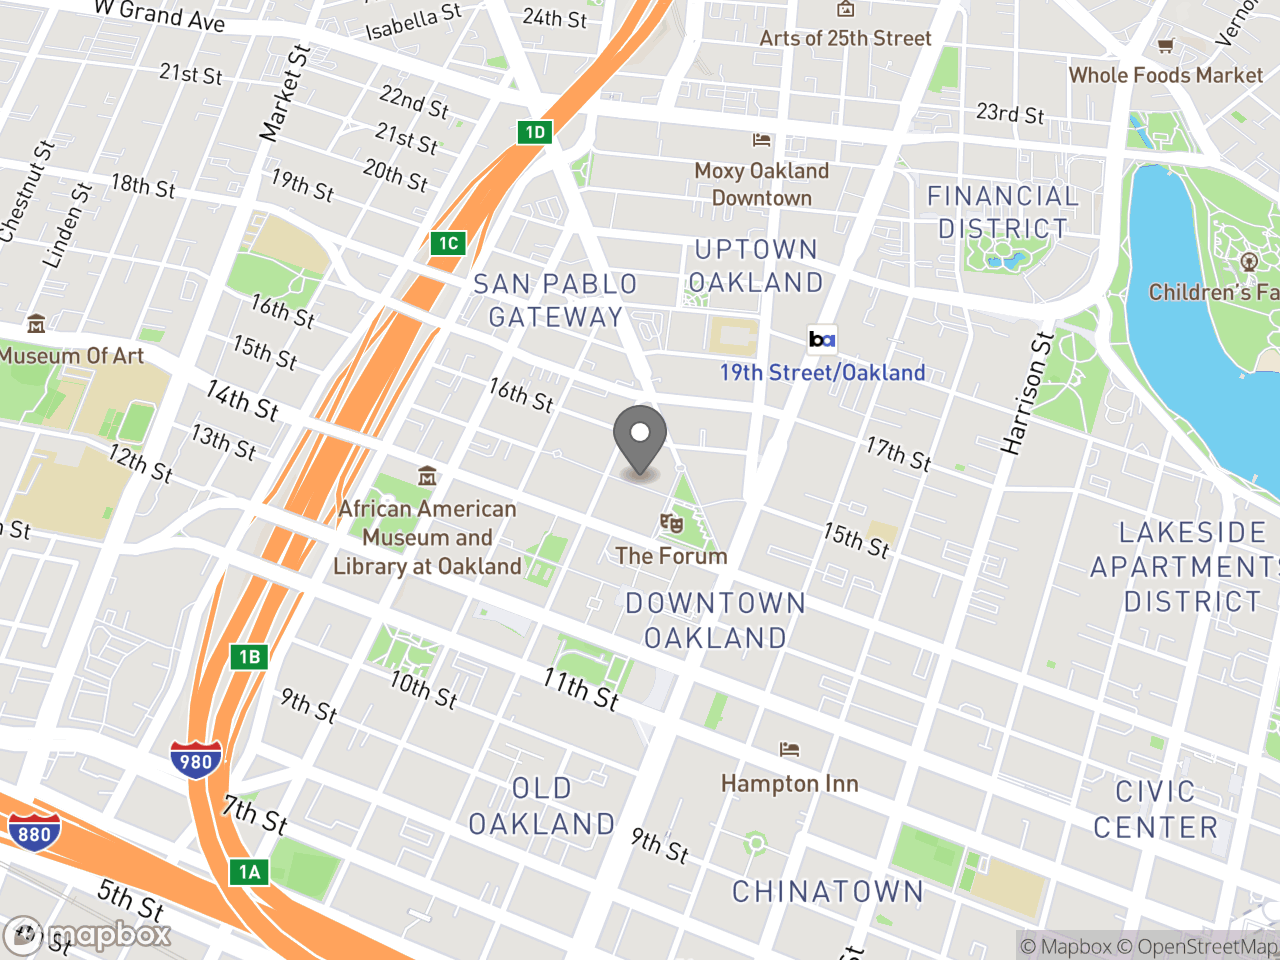 Map image for Police Commission, located at 250 Frank H. Ogawa Plaza in Oakland, CA 94612